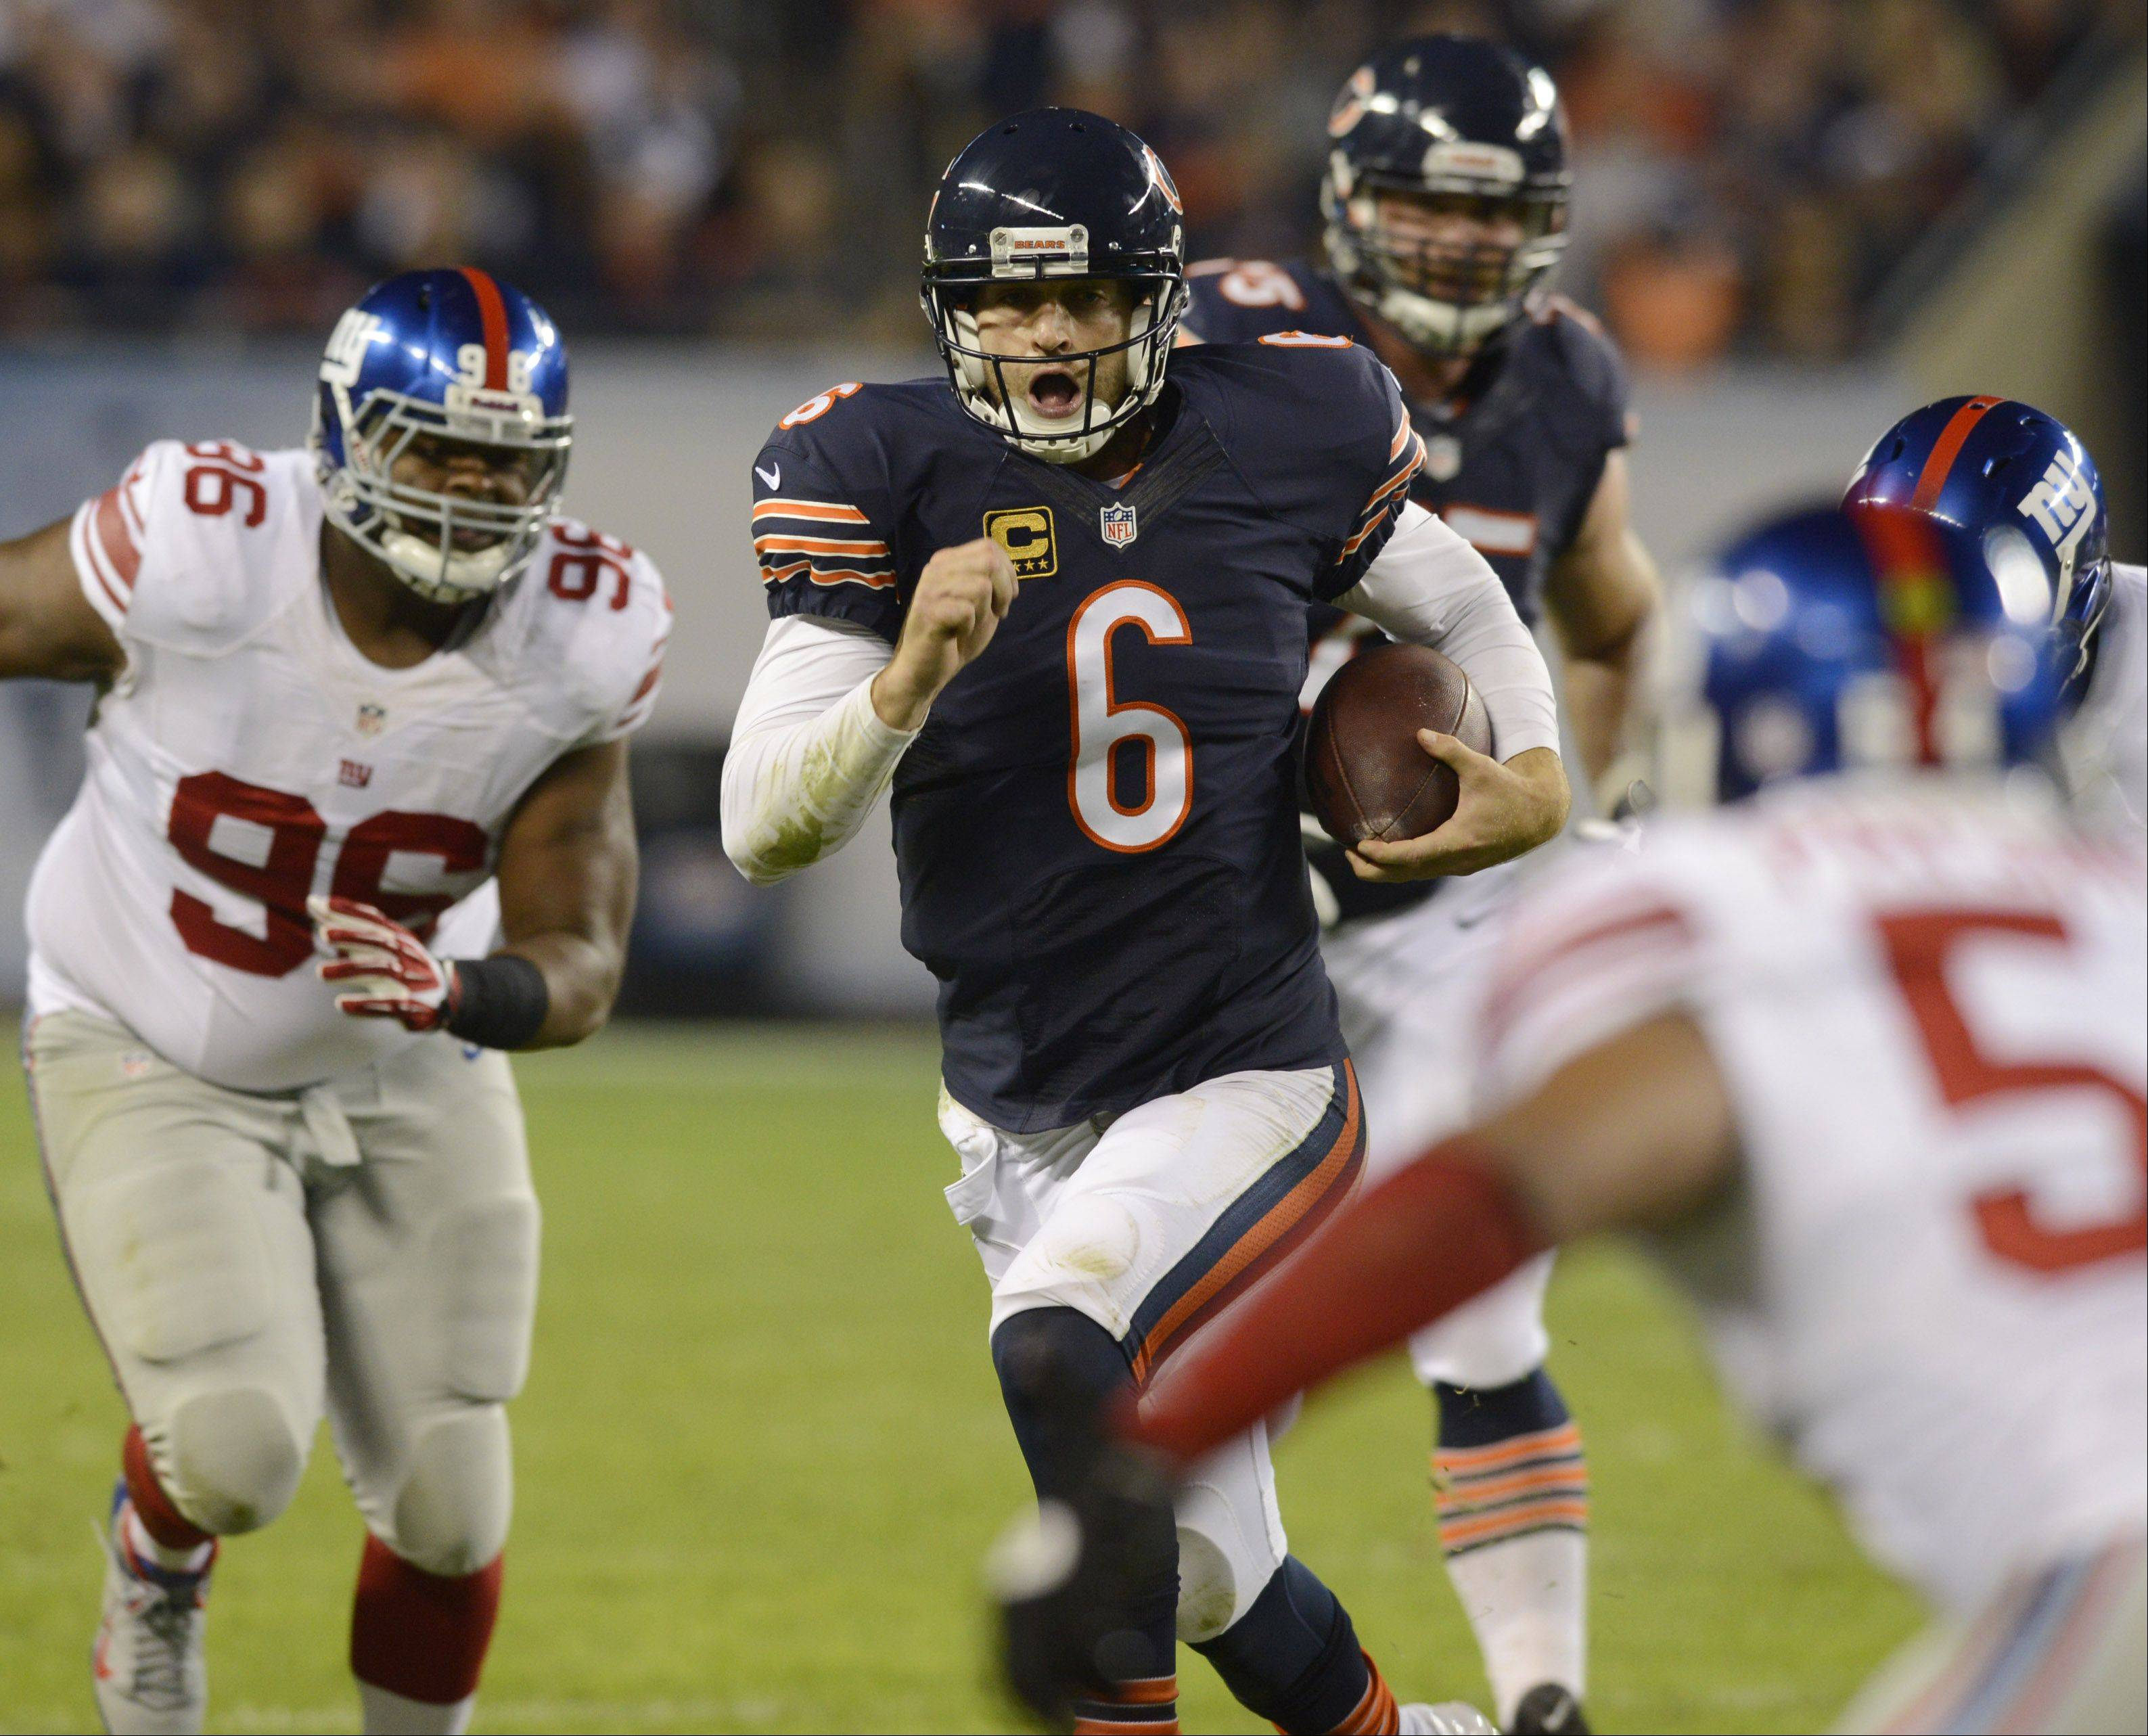 Chicago Bears quarterback Jay Cutler runs the ball.